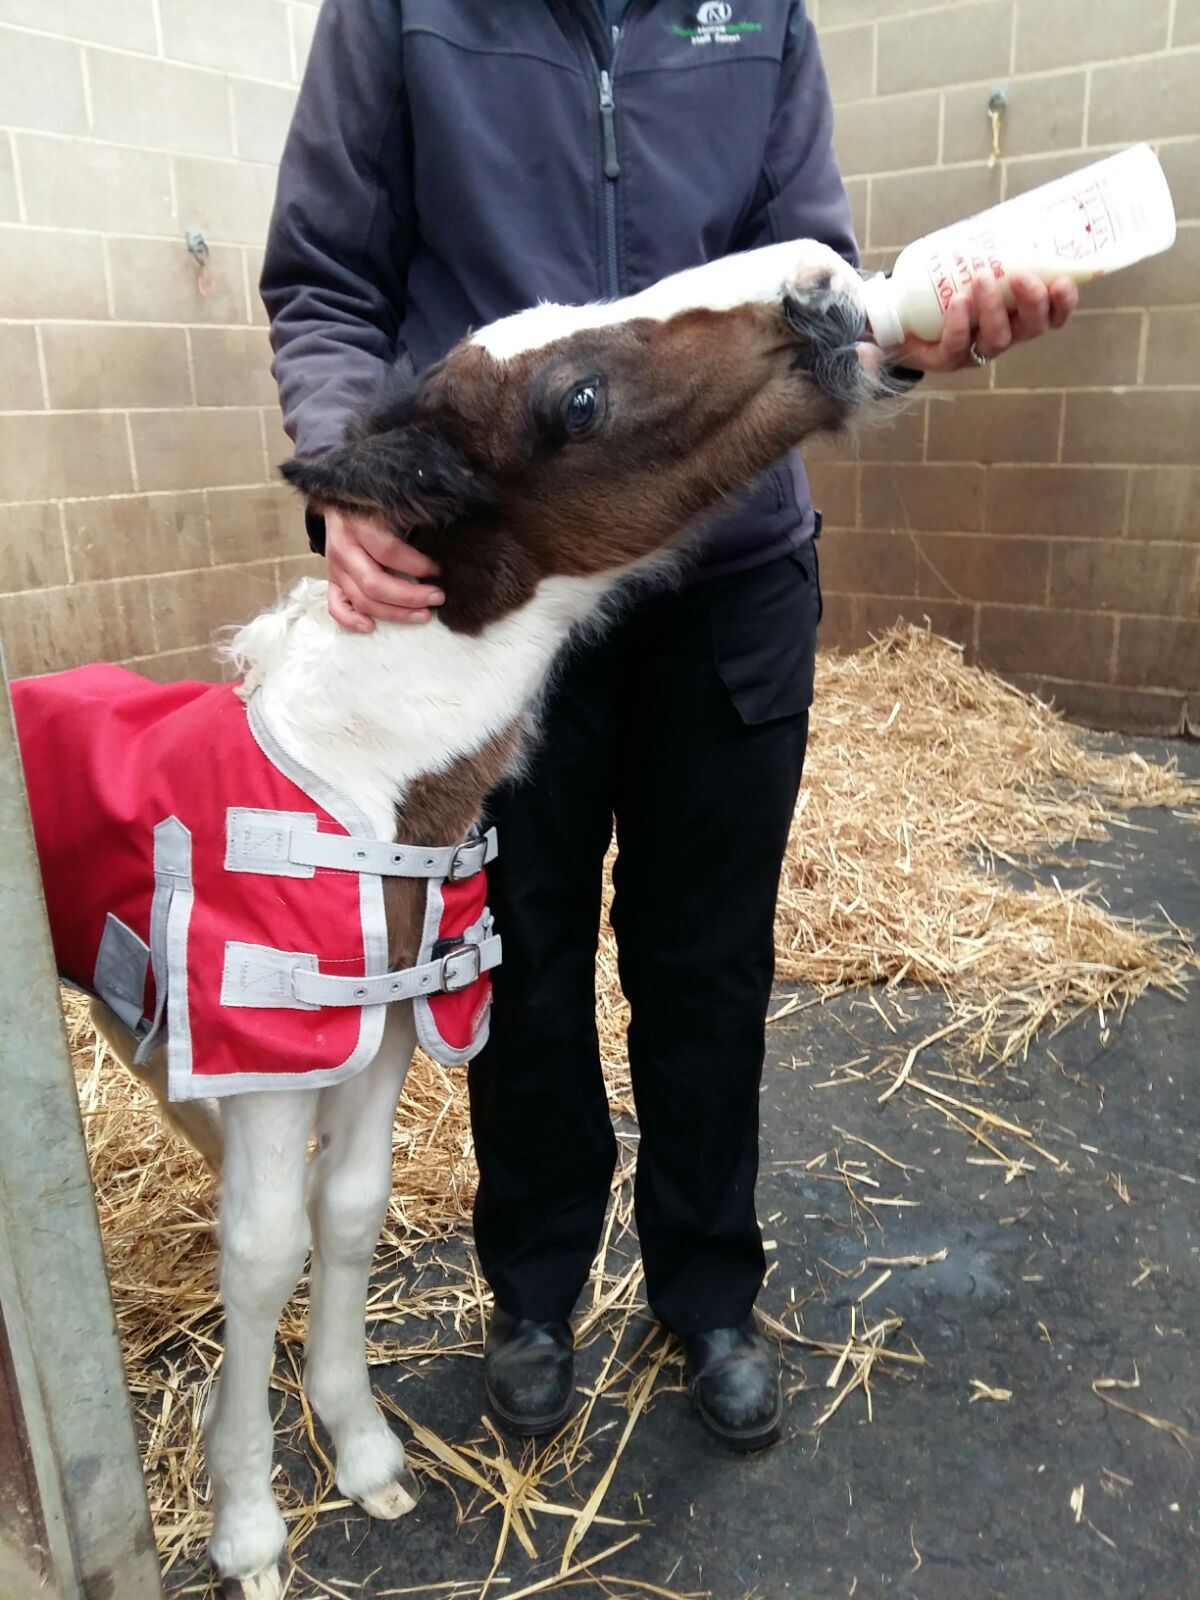 The foal is now in the care of World Horse Welfare